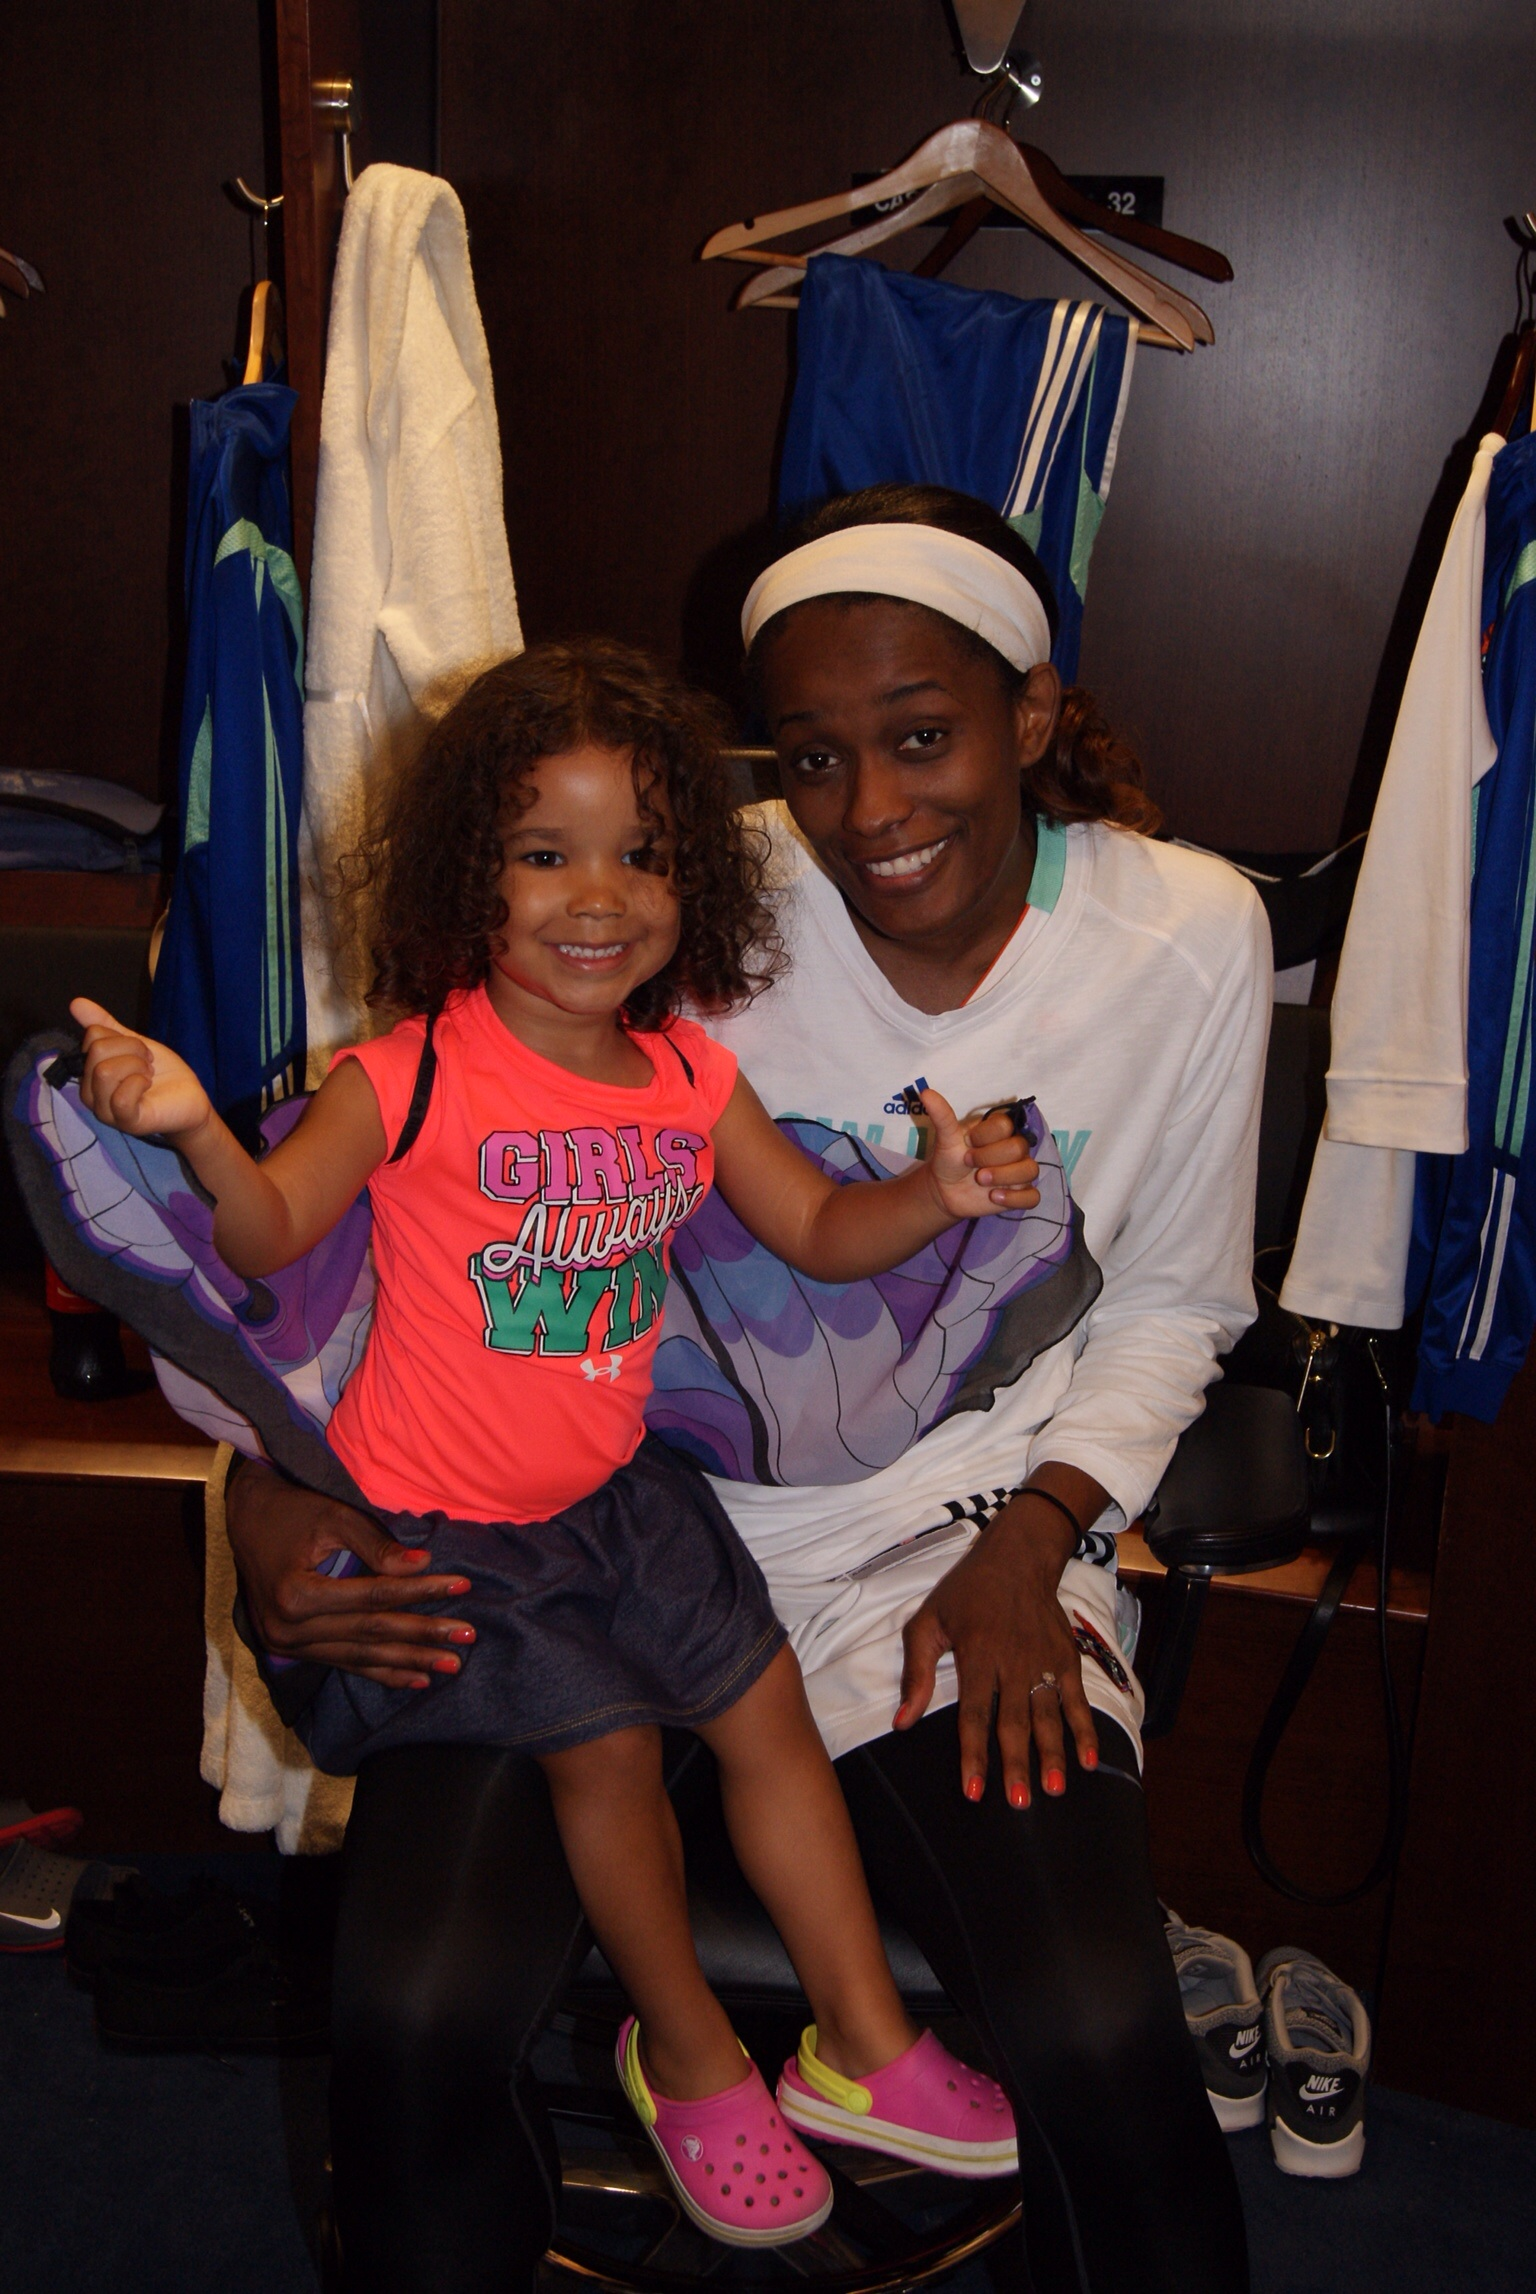 Camilla with Swin Cash. They hit it off. :)